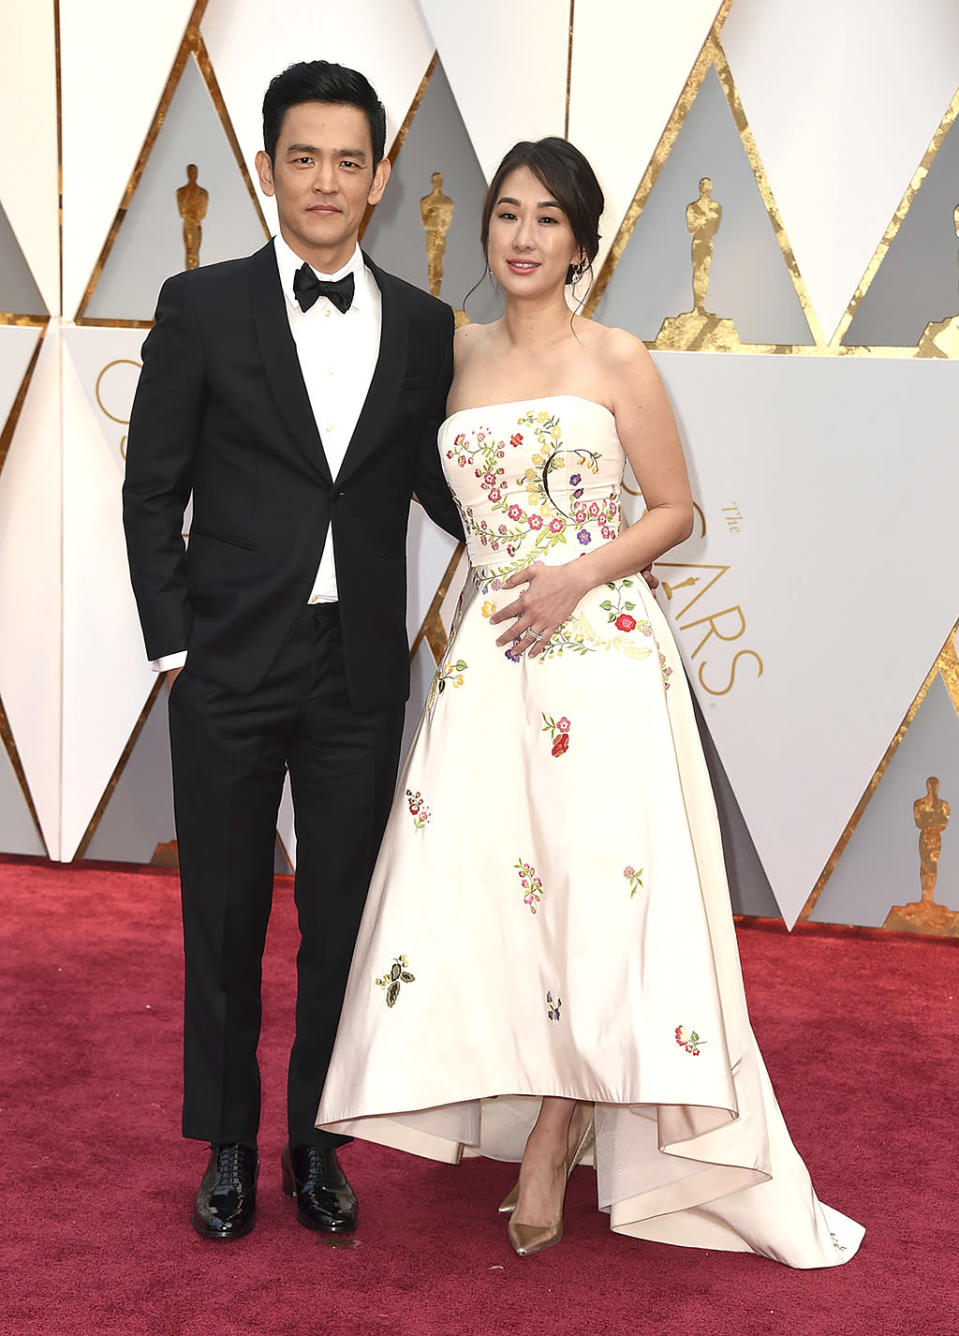 <p>John Cho and Kerri Higuchi arrive at the Oscars on Feb. 26, 2017, at the Dolby Theatre in Los Angeles. (Photo by Jordan Strauss/Invision/AP) </p>